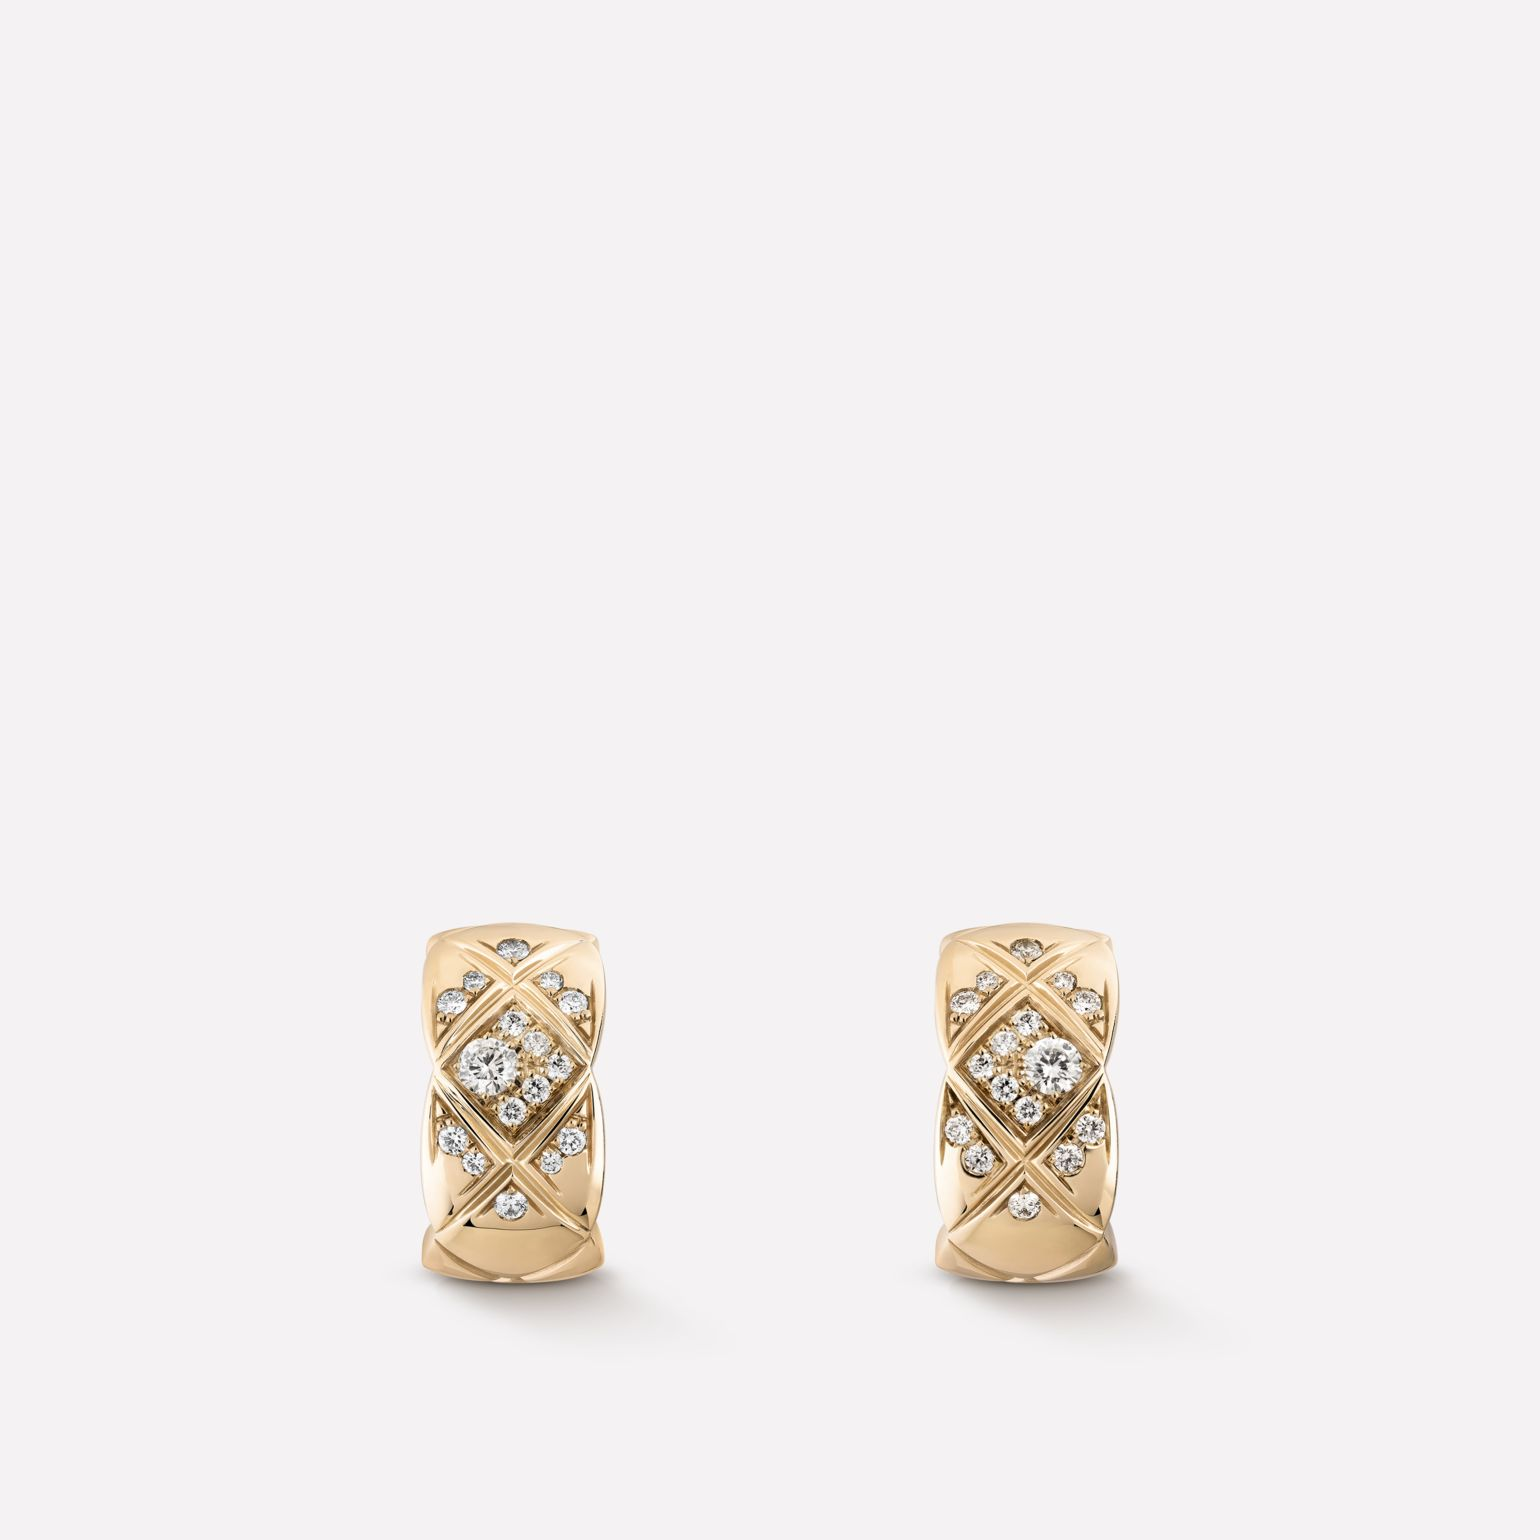 Coco Crush earrings Quilted motif earrings in 18K BEIGE GOLD and diamonds